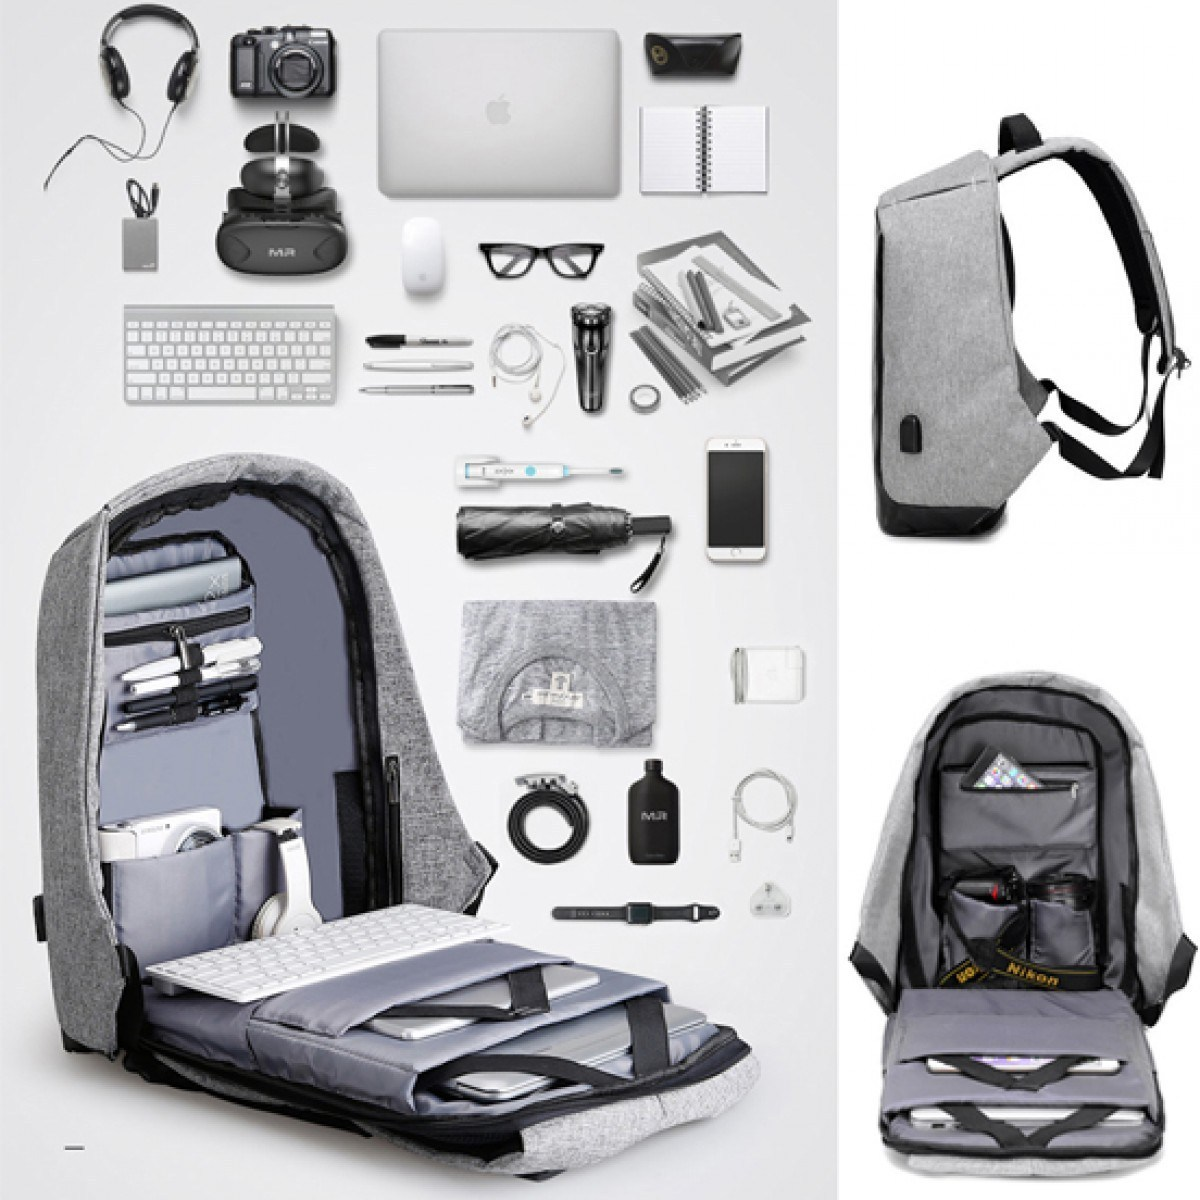 computer and accessory deals online